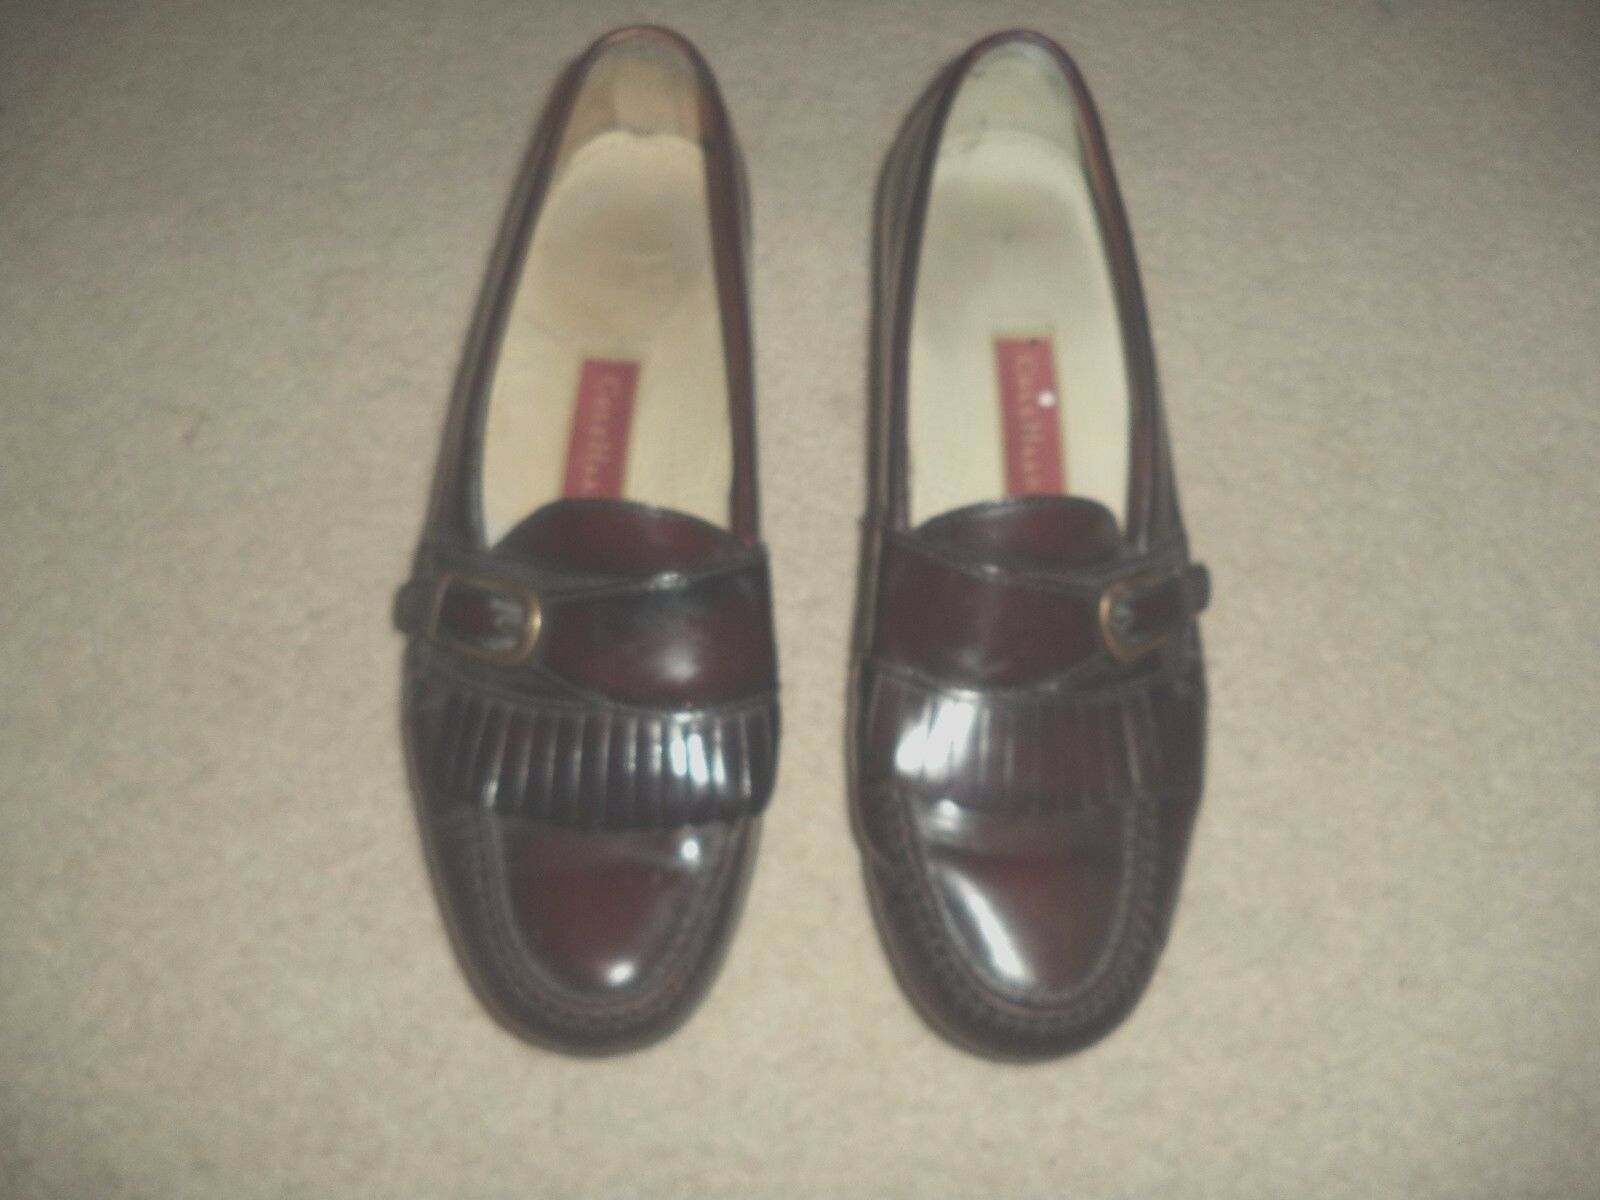 COLE HAAN Dress Burgundy Leather Slip On Loafer Style Tassle Dress HAAN Shoes Sz 10/10.5 1e547e